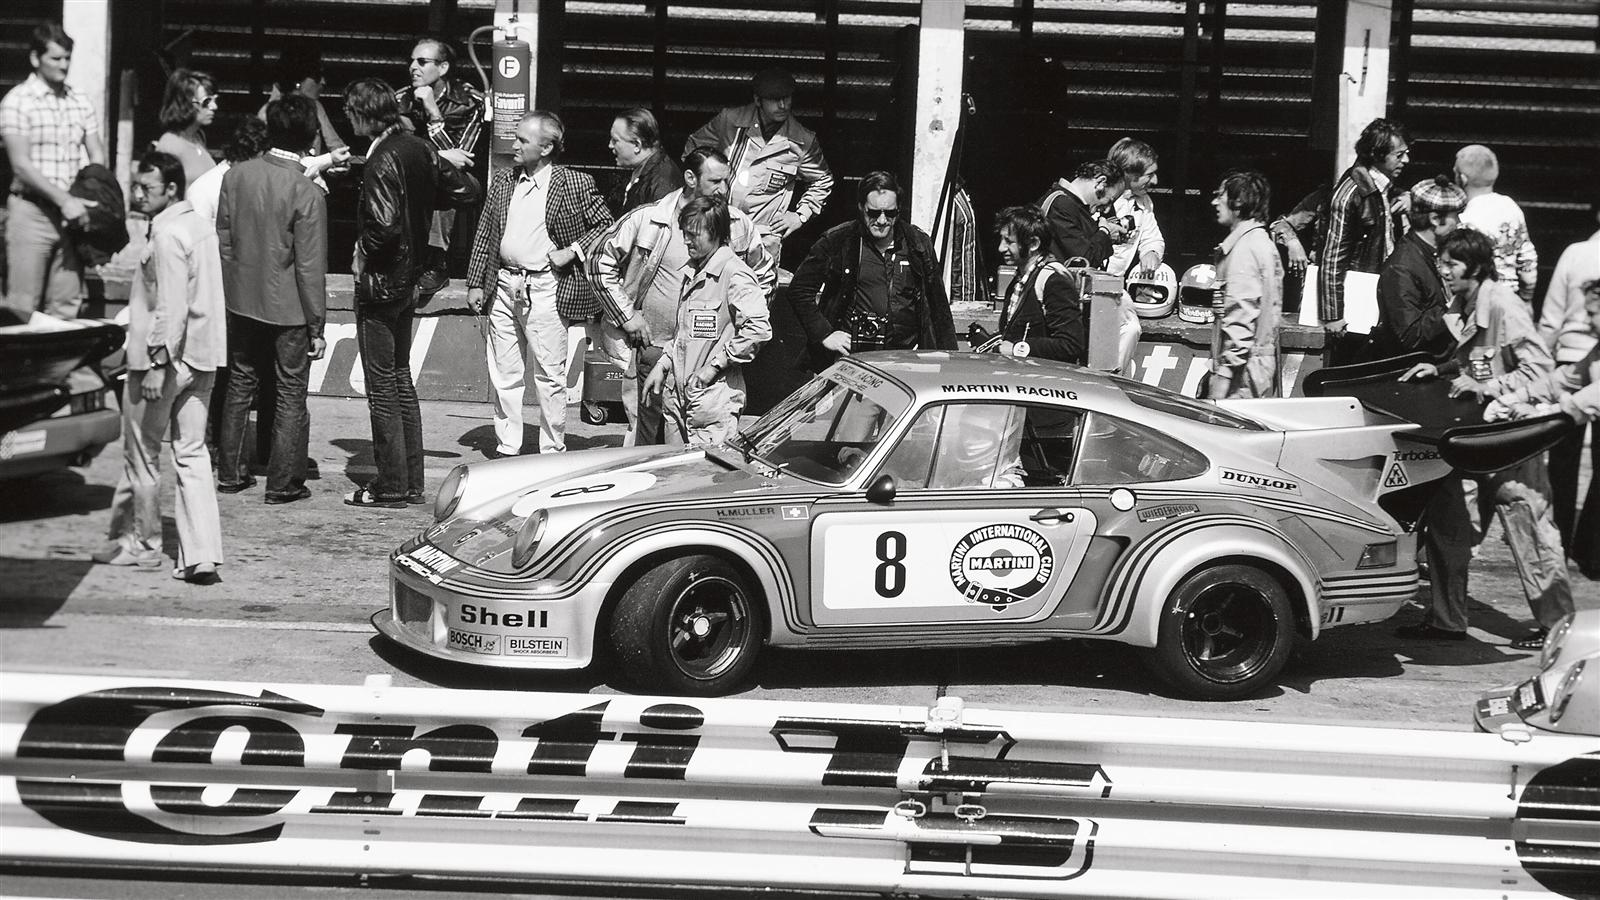 Porsche 911 Carrera RSR Turbo in the pit lane of the Nurburgring in 1974